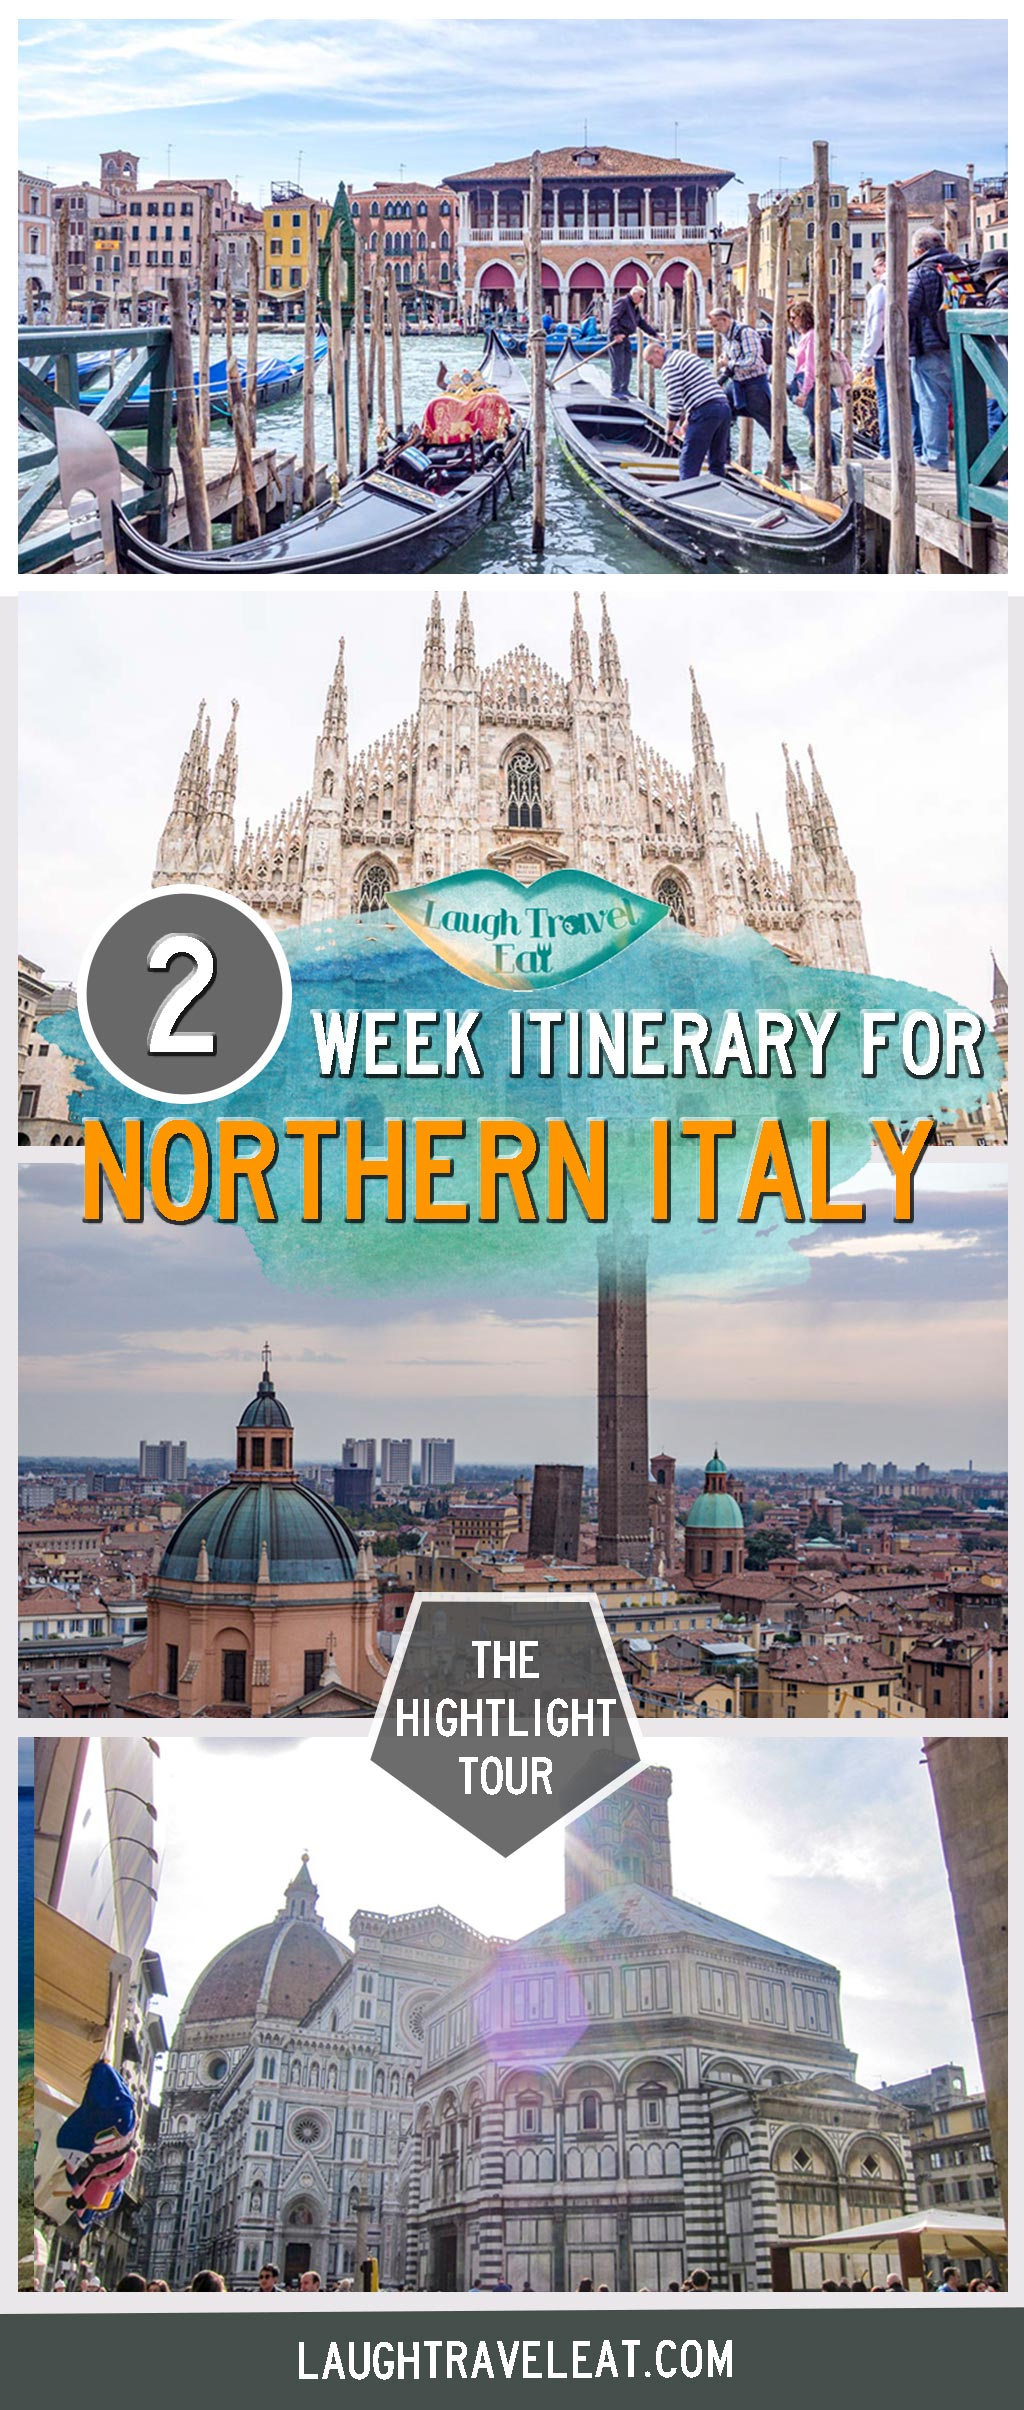 When it comes to northern Italy, there are so many stunning cities from the Italian Alps to the rolling vineyards of Tuscany. Trying to plan an itinerary for the entire northern Italy is difficult, and you're going to have to make some sacrifices. But fear not! I've spent months exploring this part of Italy, and I'm here to help you pick and choose what you want to see and how to see as much as you can: #Italy #itinerary #veneto #emiliaromagna